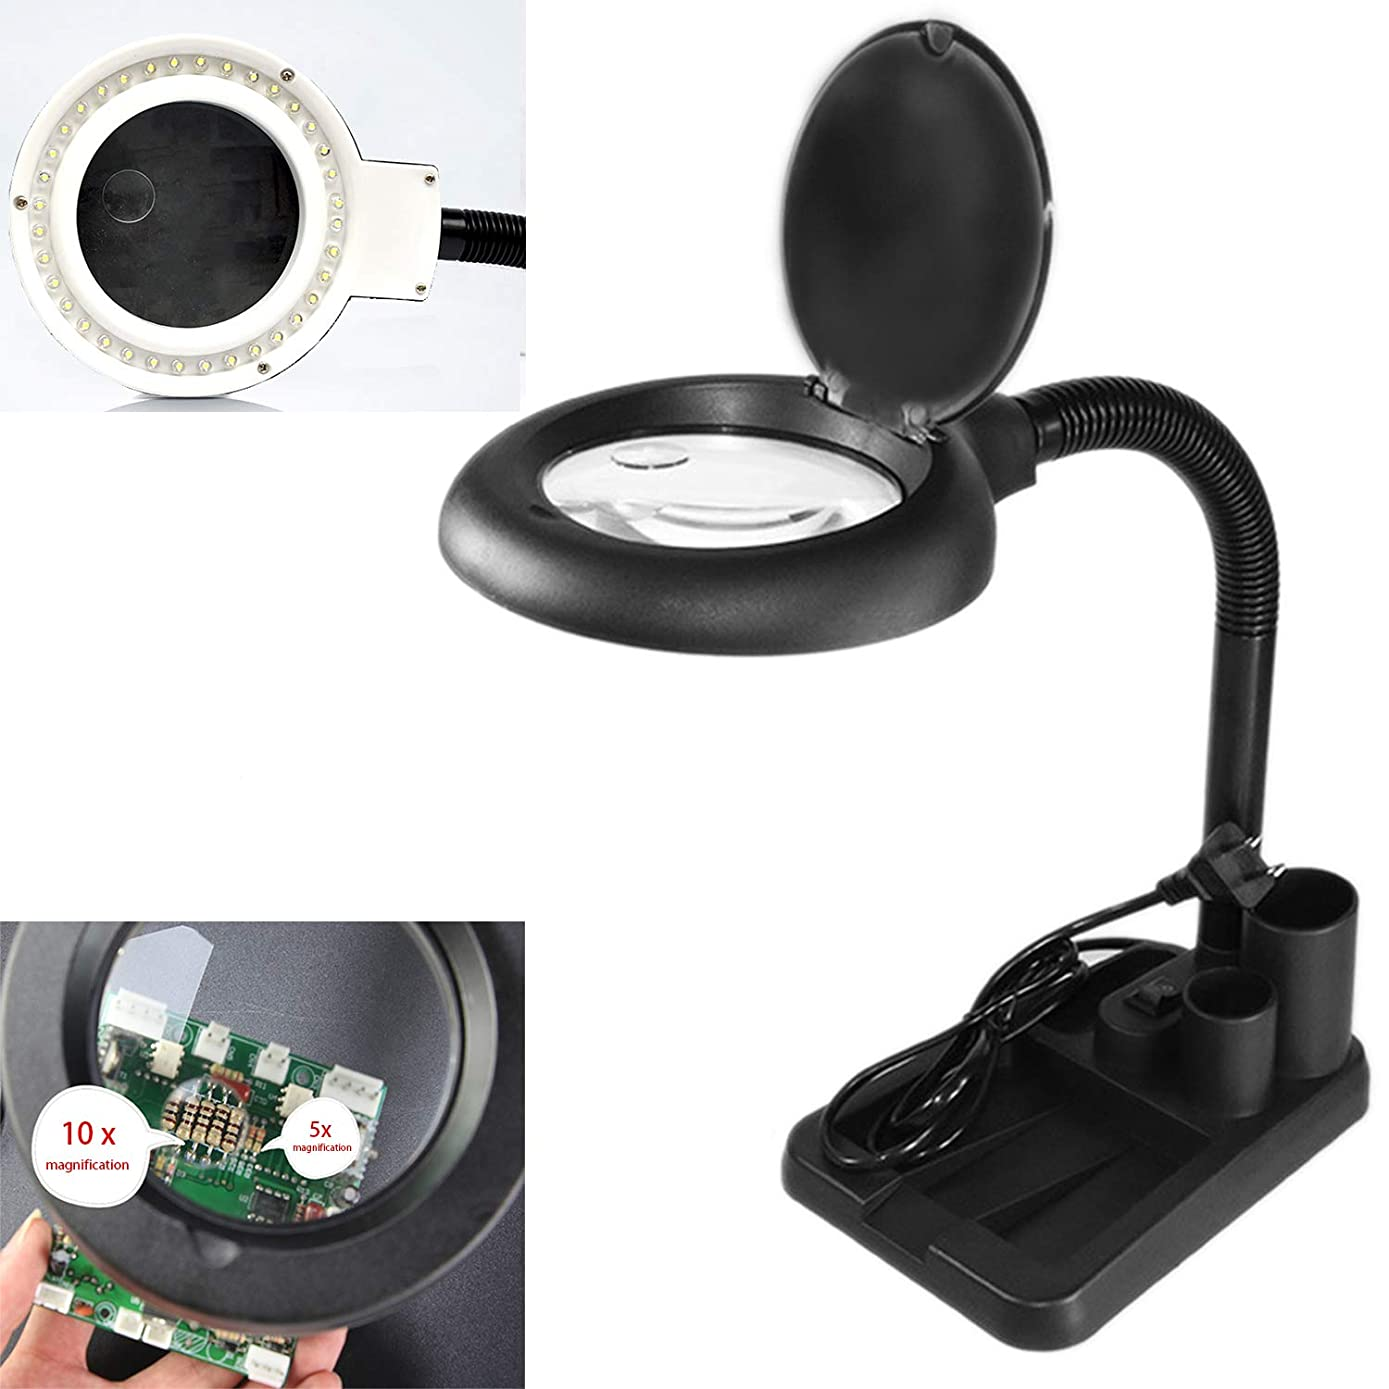 LED Magnifying Lamp, 5 X 10X Magnifier and Table & Desk Lamp, Portable Adjustable Magnifying Glass for Reading, Repair, Crafts, Sewing